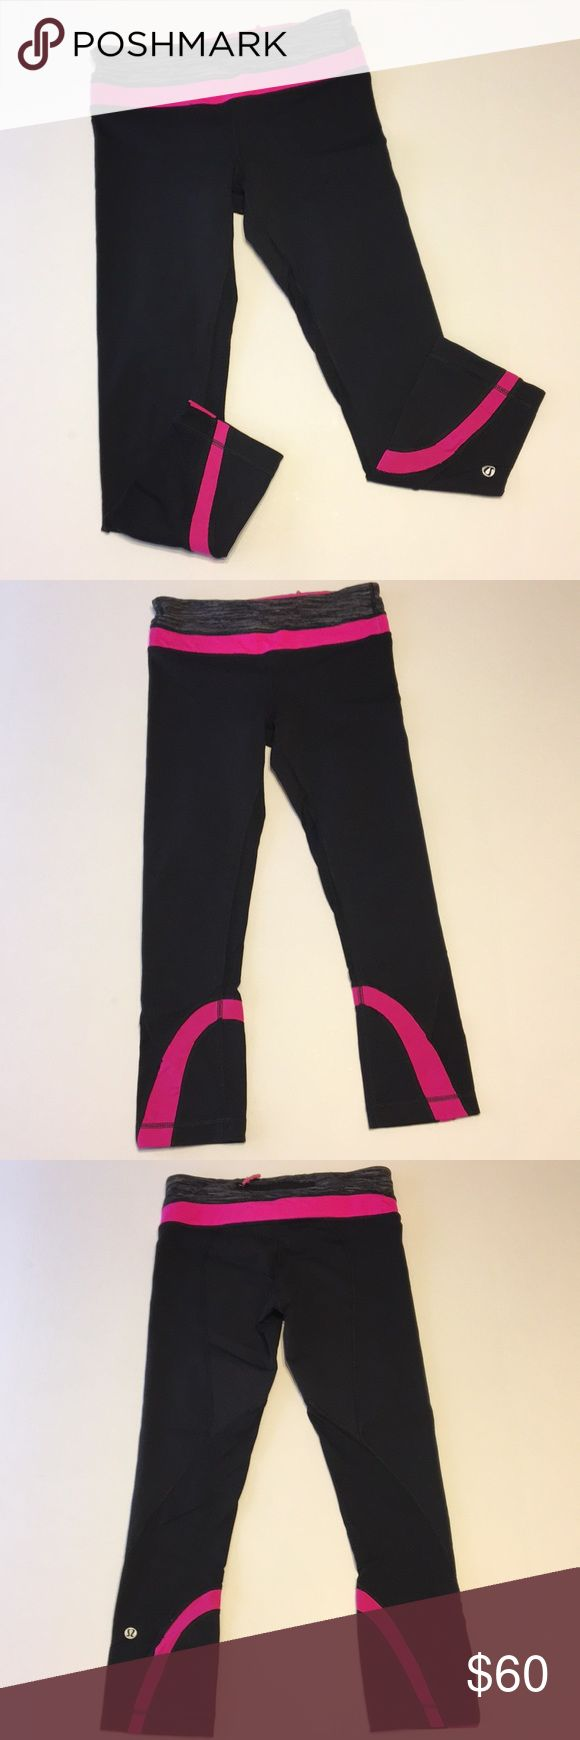 """Lululemon black/pink crop pant size 4 Lululemon black crop pants with hot pink trim.  size 4.  These have a mesh type material on the back of the legs.  It's not super see through, but slightly.  Logo is on the back of the left leg...it is cracking a bit, see photo.  Zippered pocket across the back of the waistband and hidden pocket in front.  Drawstring waistband.  No holes or stains or pilling.  Excellent condition.  Inseam is about 21"""".  Rise is 8"""".  Waist laying flat is 12"""". lululemon…"""